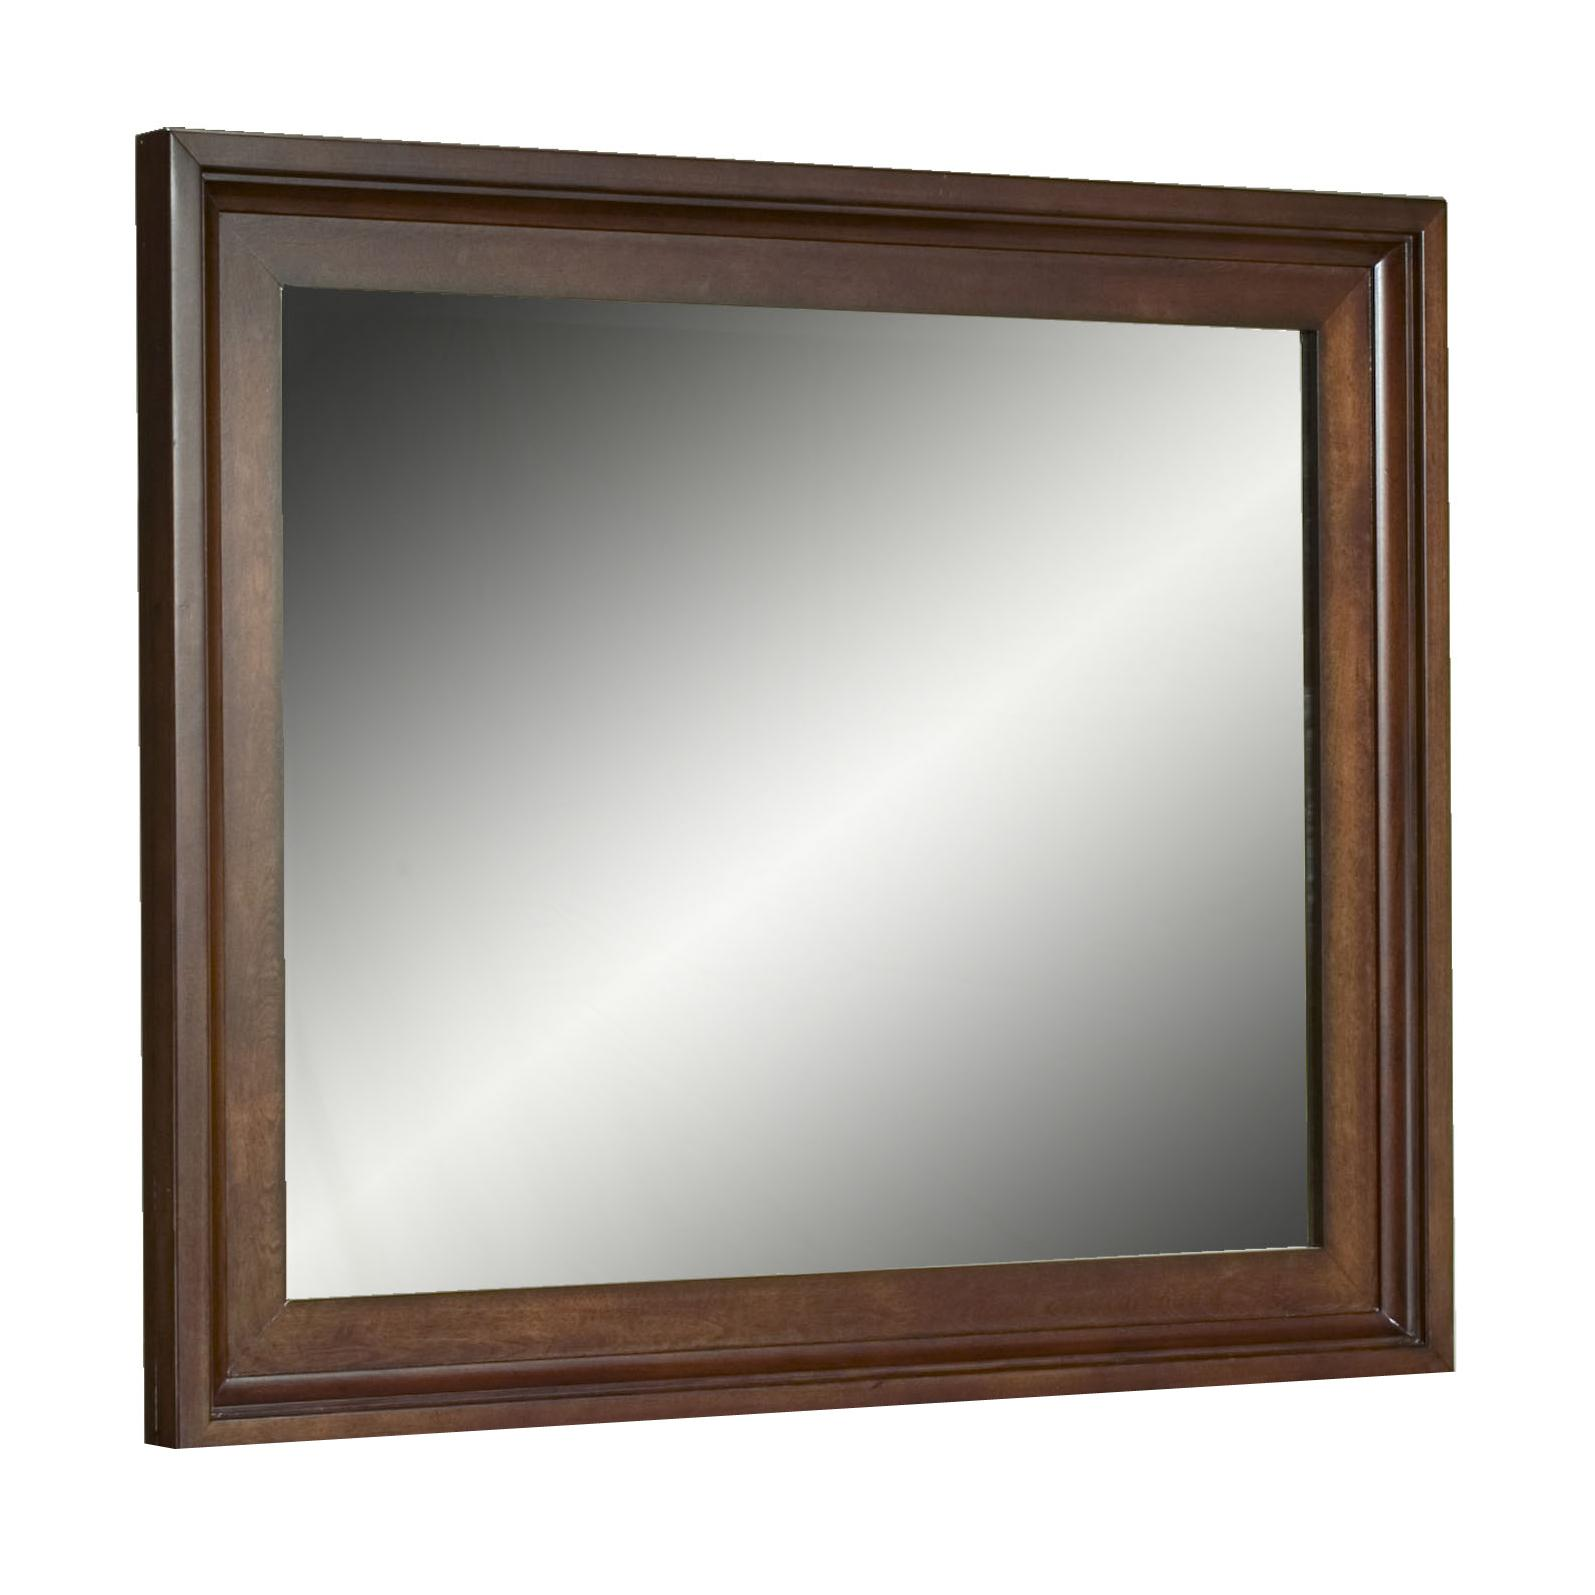 Morris Home Furnishings Clinton Clinton Chesser Mirror - Item Number: ICB-463-BCH